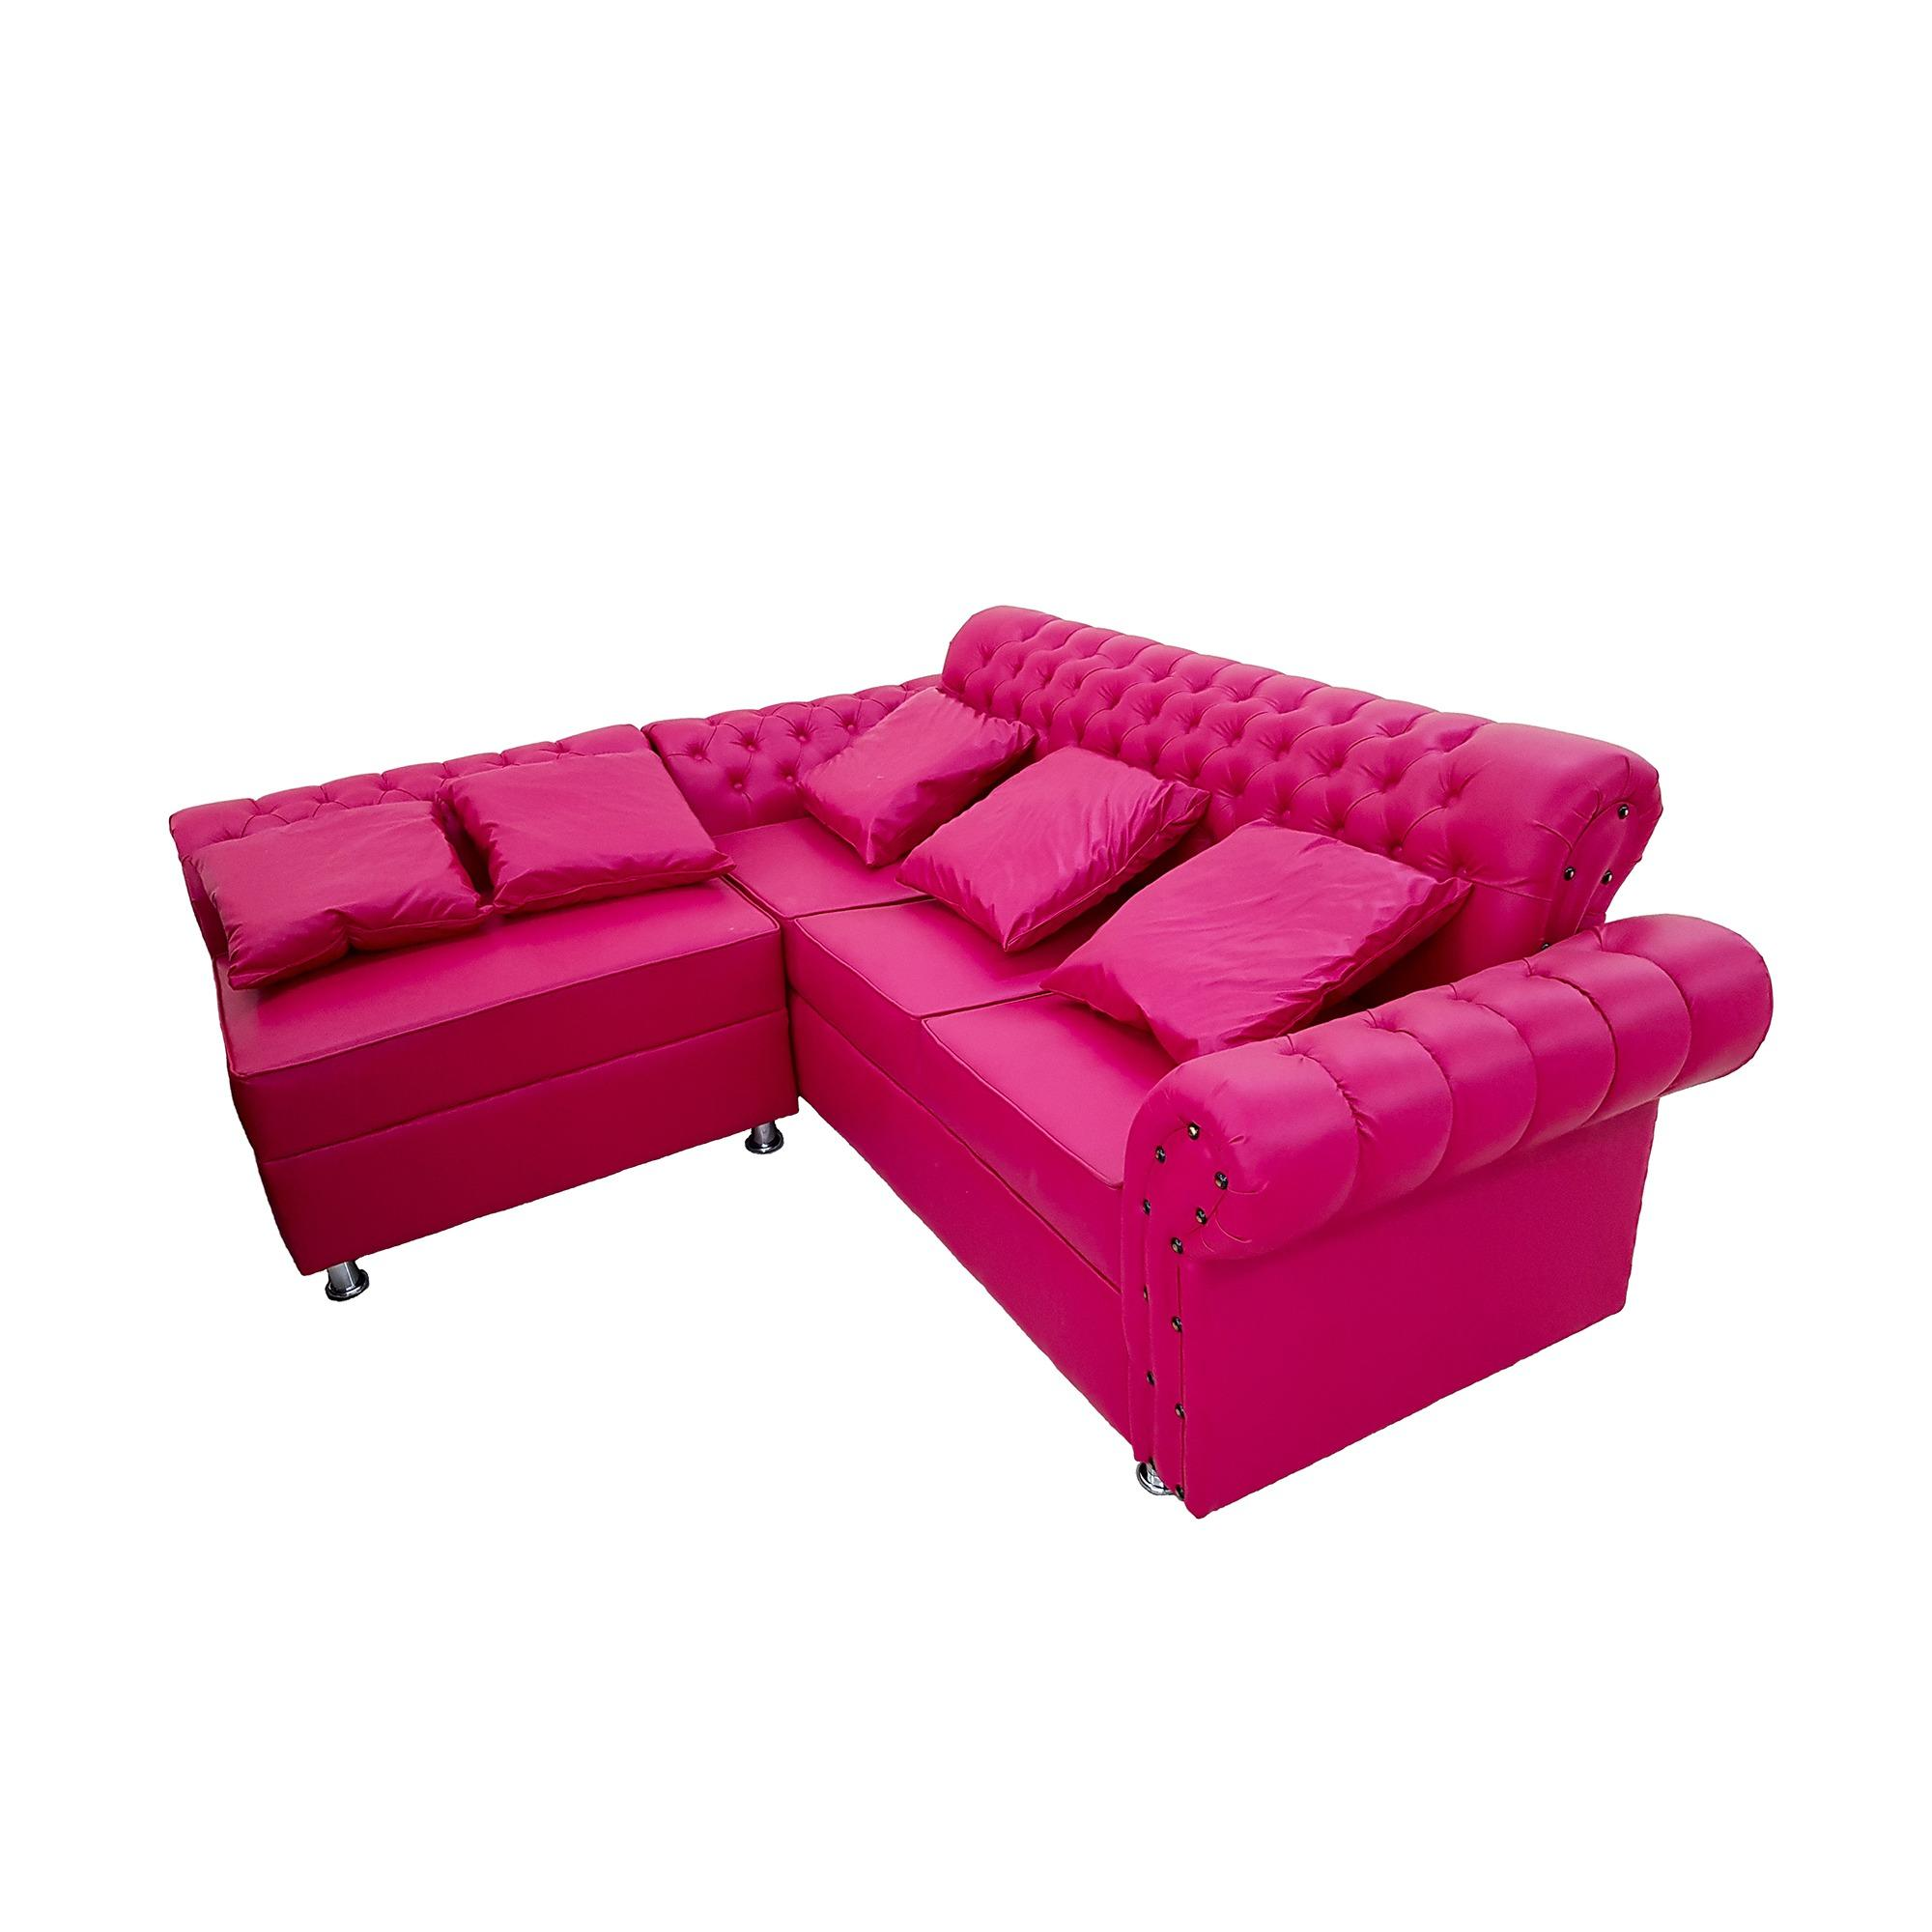 Bestway Sofa Bed 2 In 1 Double Sofa Multifungsi 67356 Oranye Source · Sofa